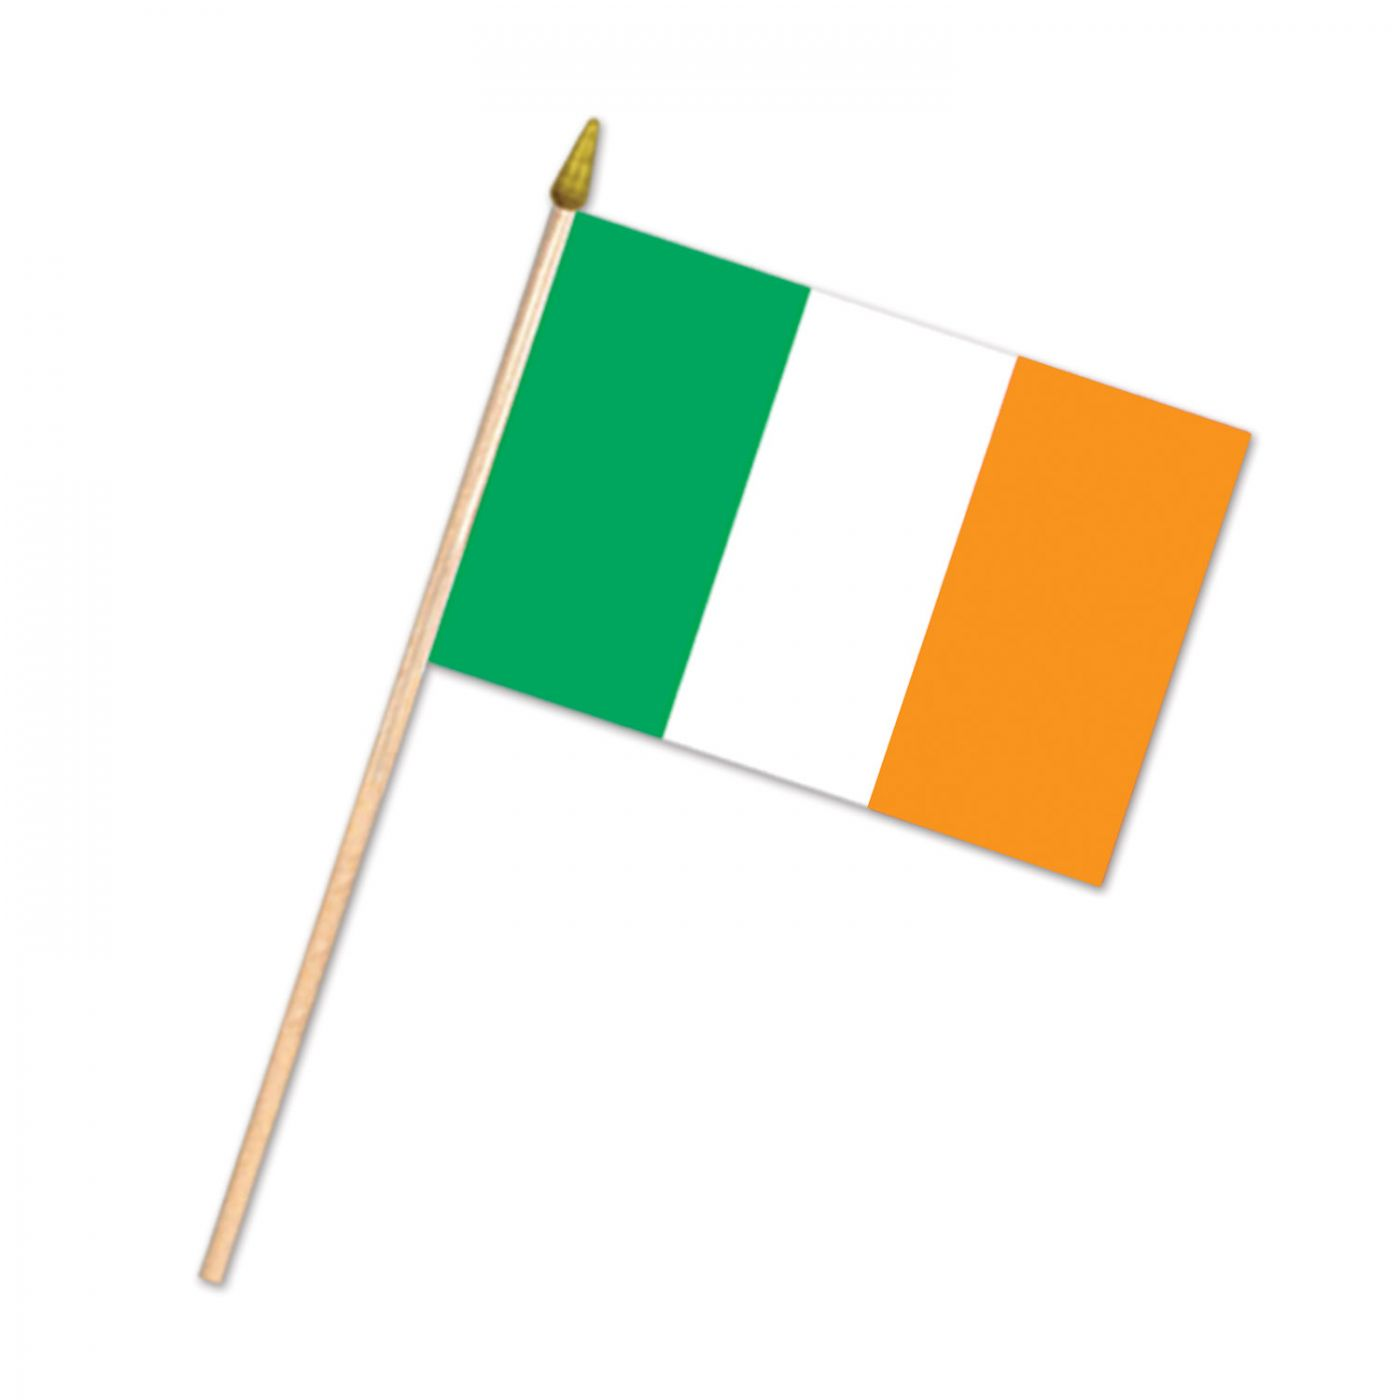 Irish Flag - Fabric image